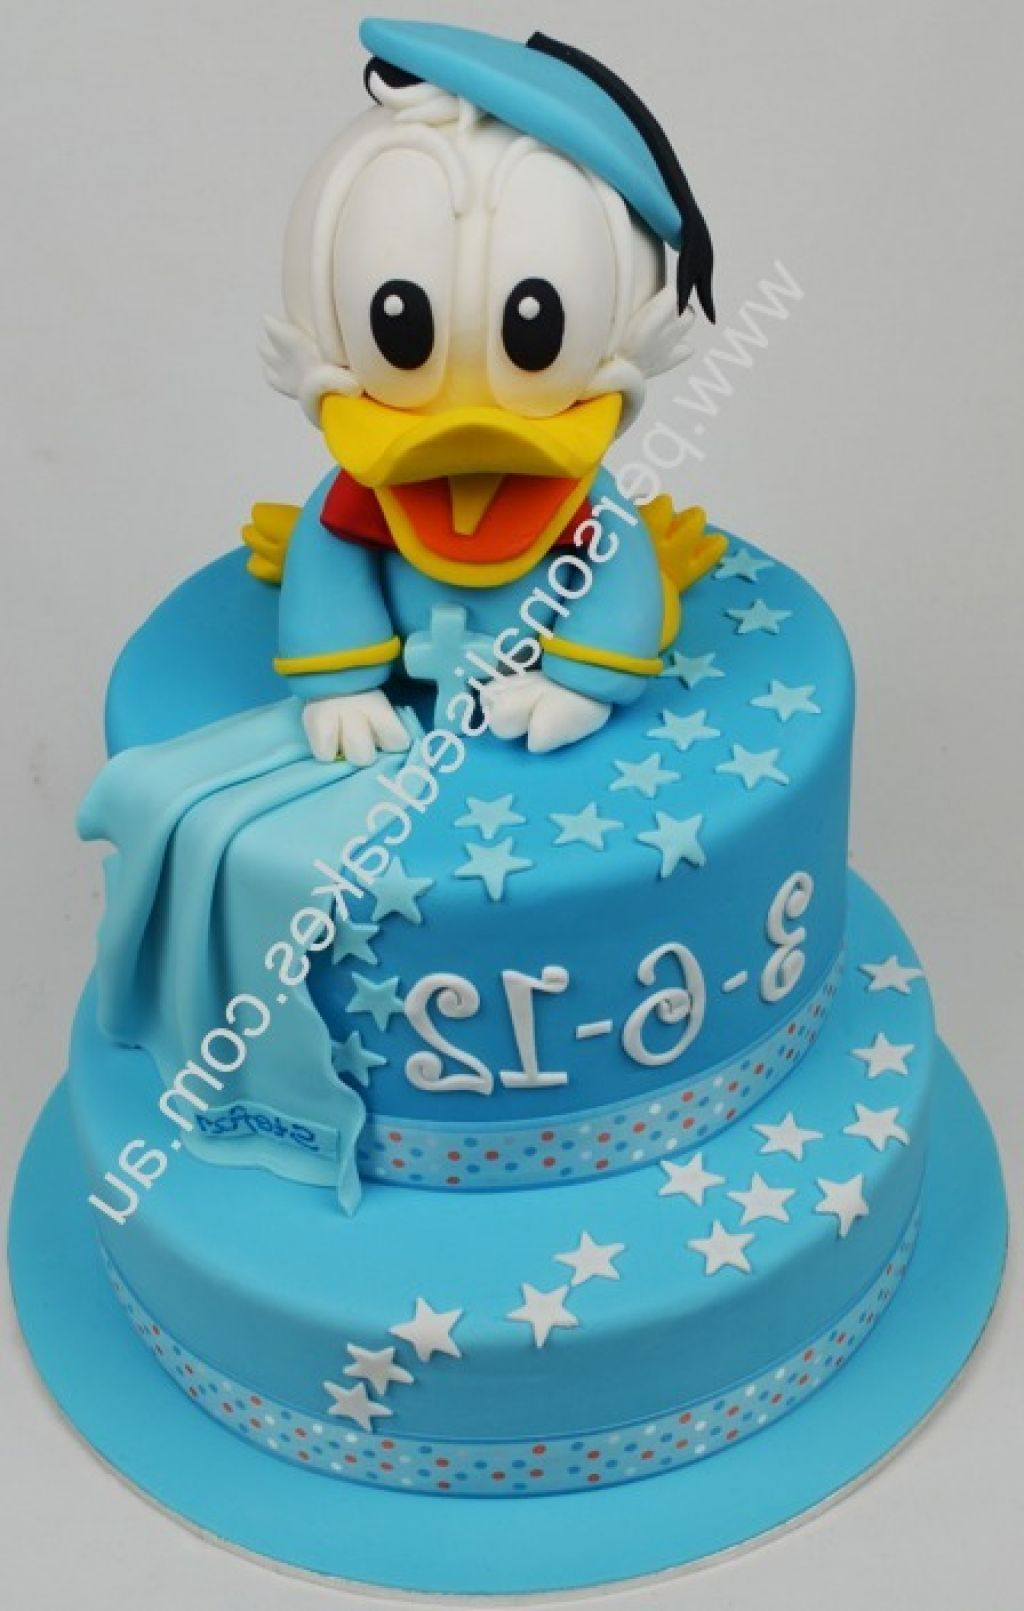 Cake Designs Duck Cake Picture Donald Duck It S